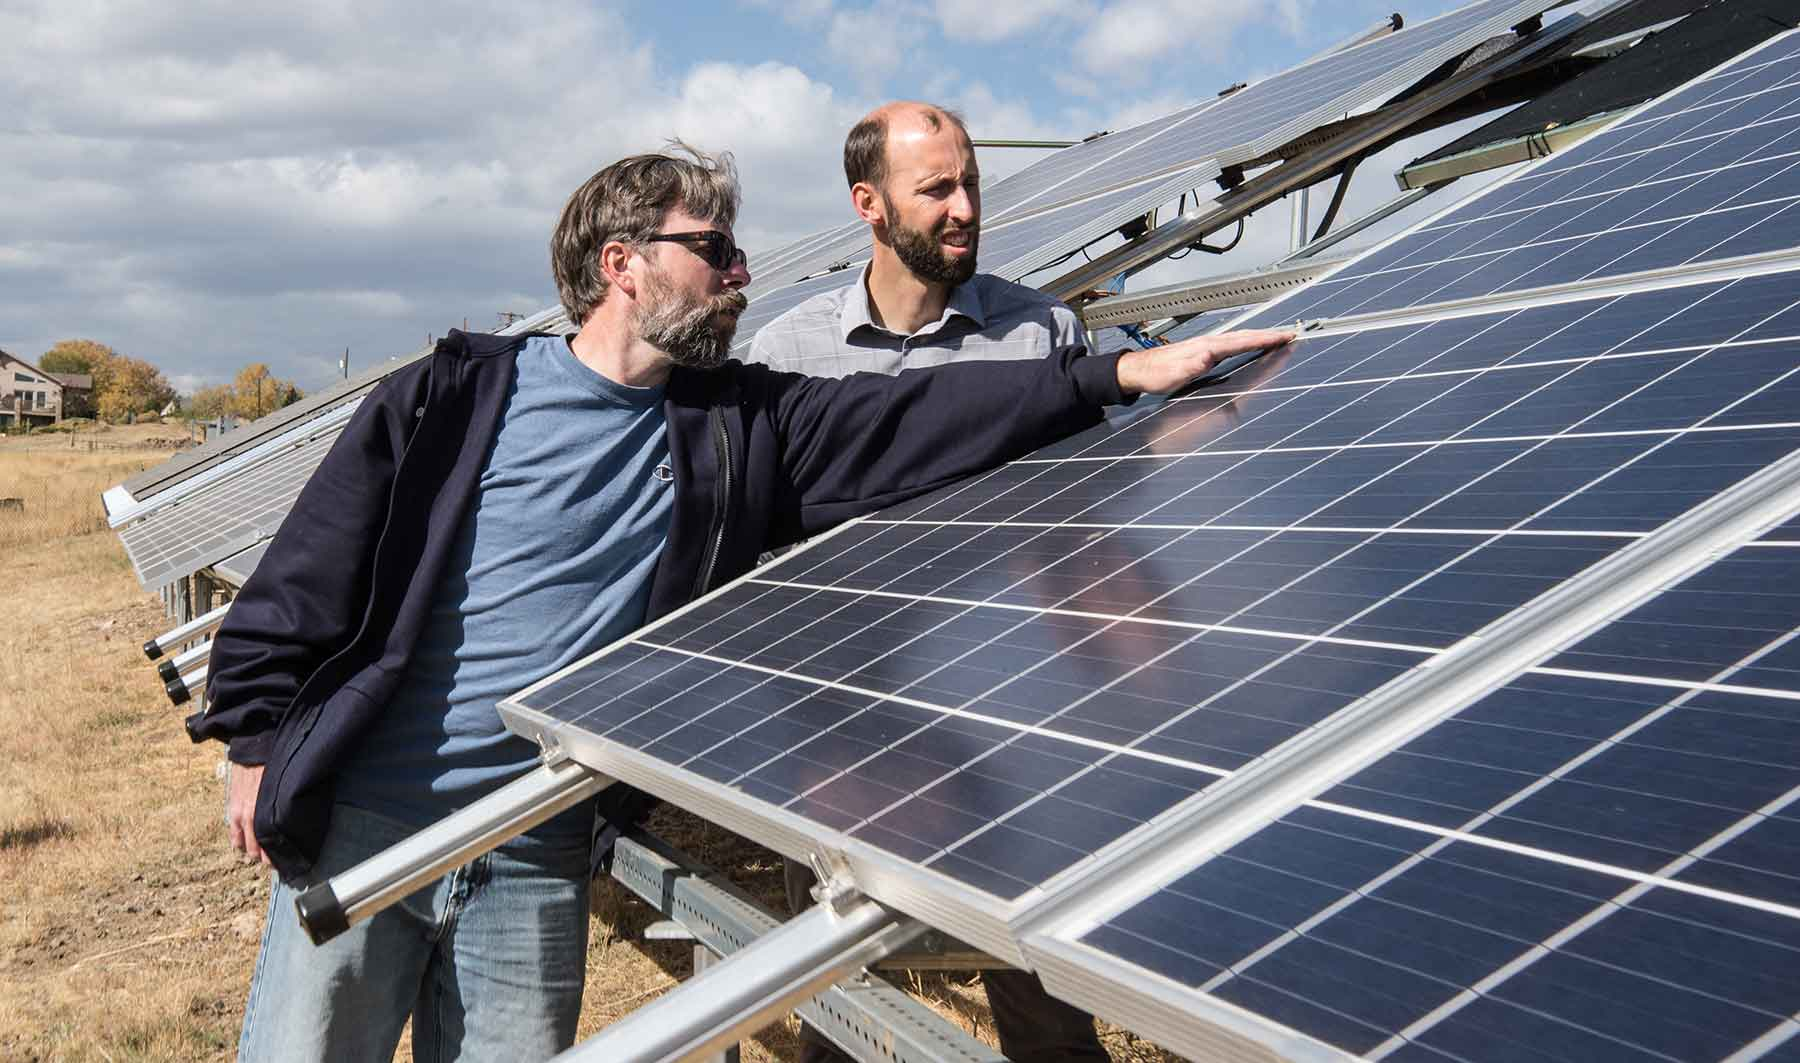 NREL opens solar array field to inform public